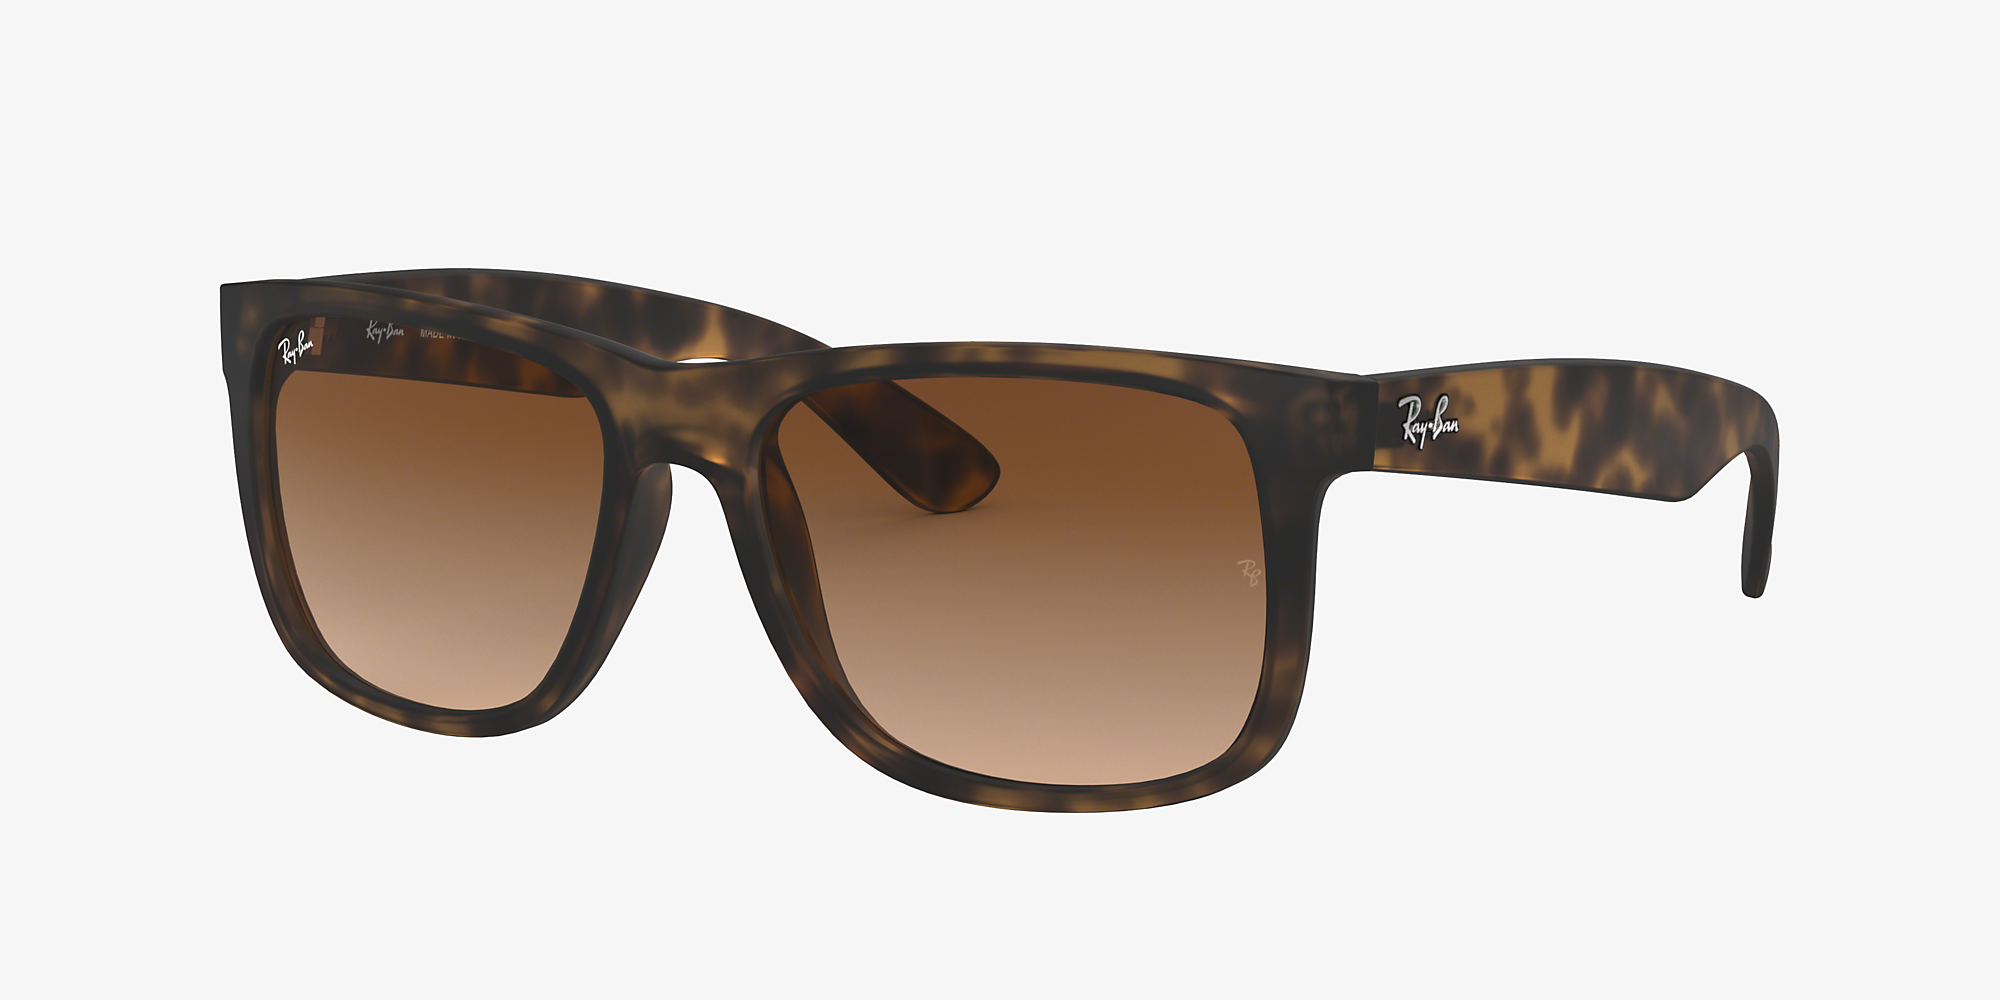 RAY BAN 0RAY BAN416555710/13 HAVANA BROWN GRADIENT